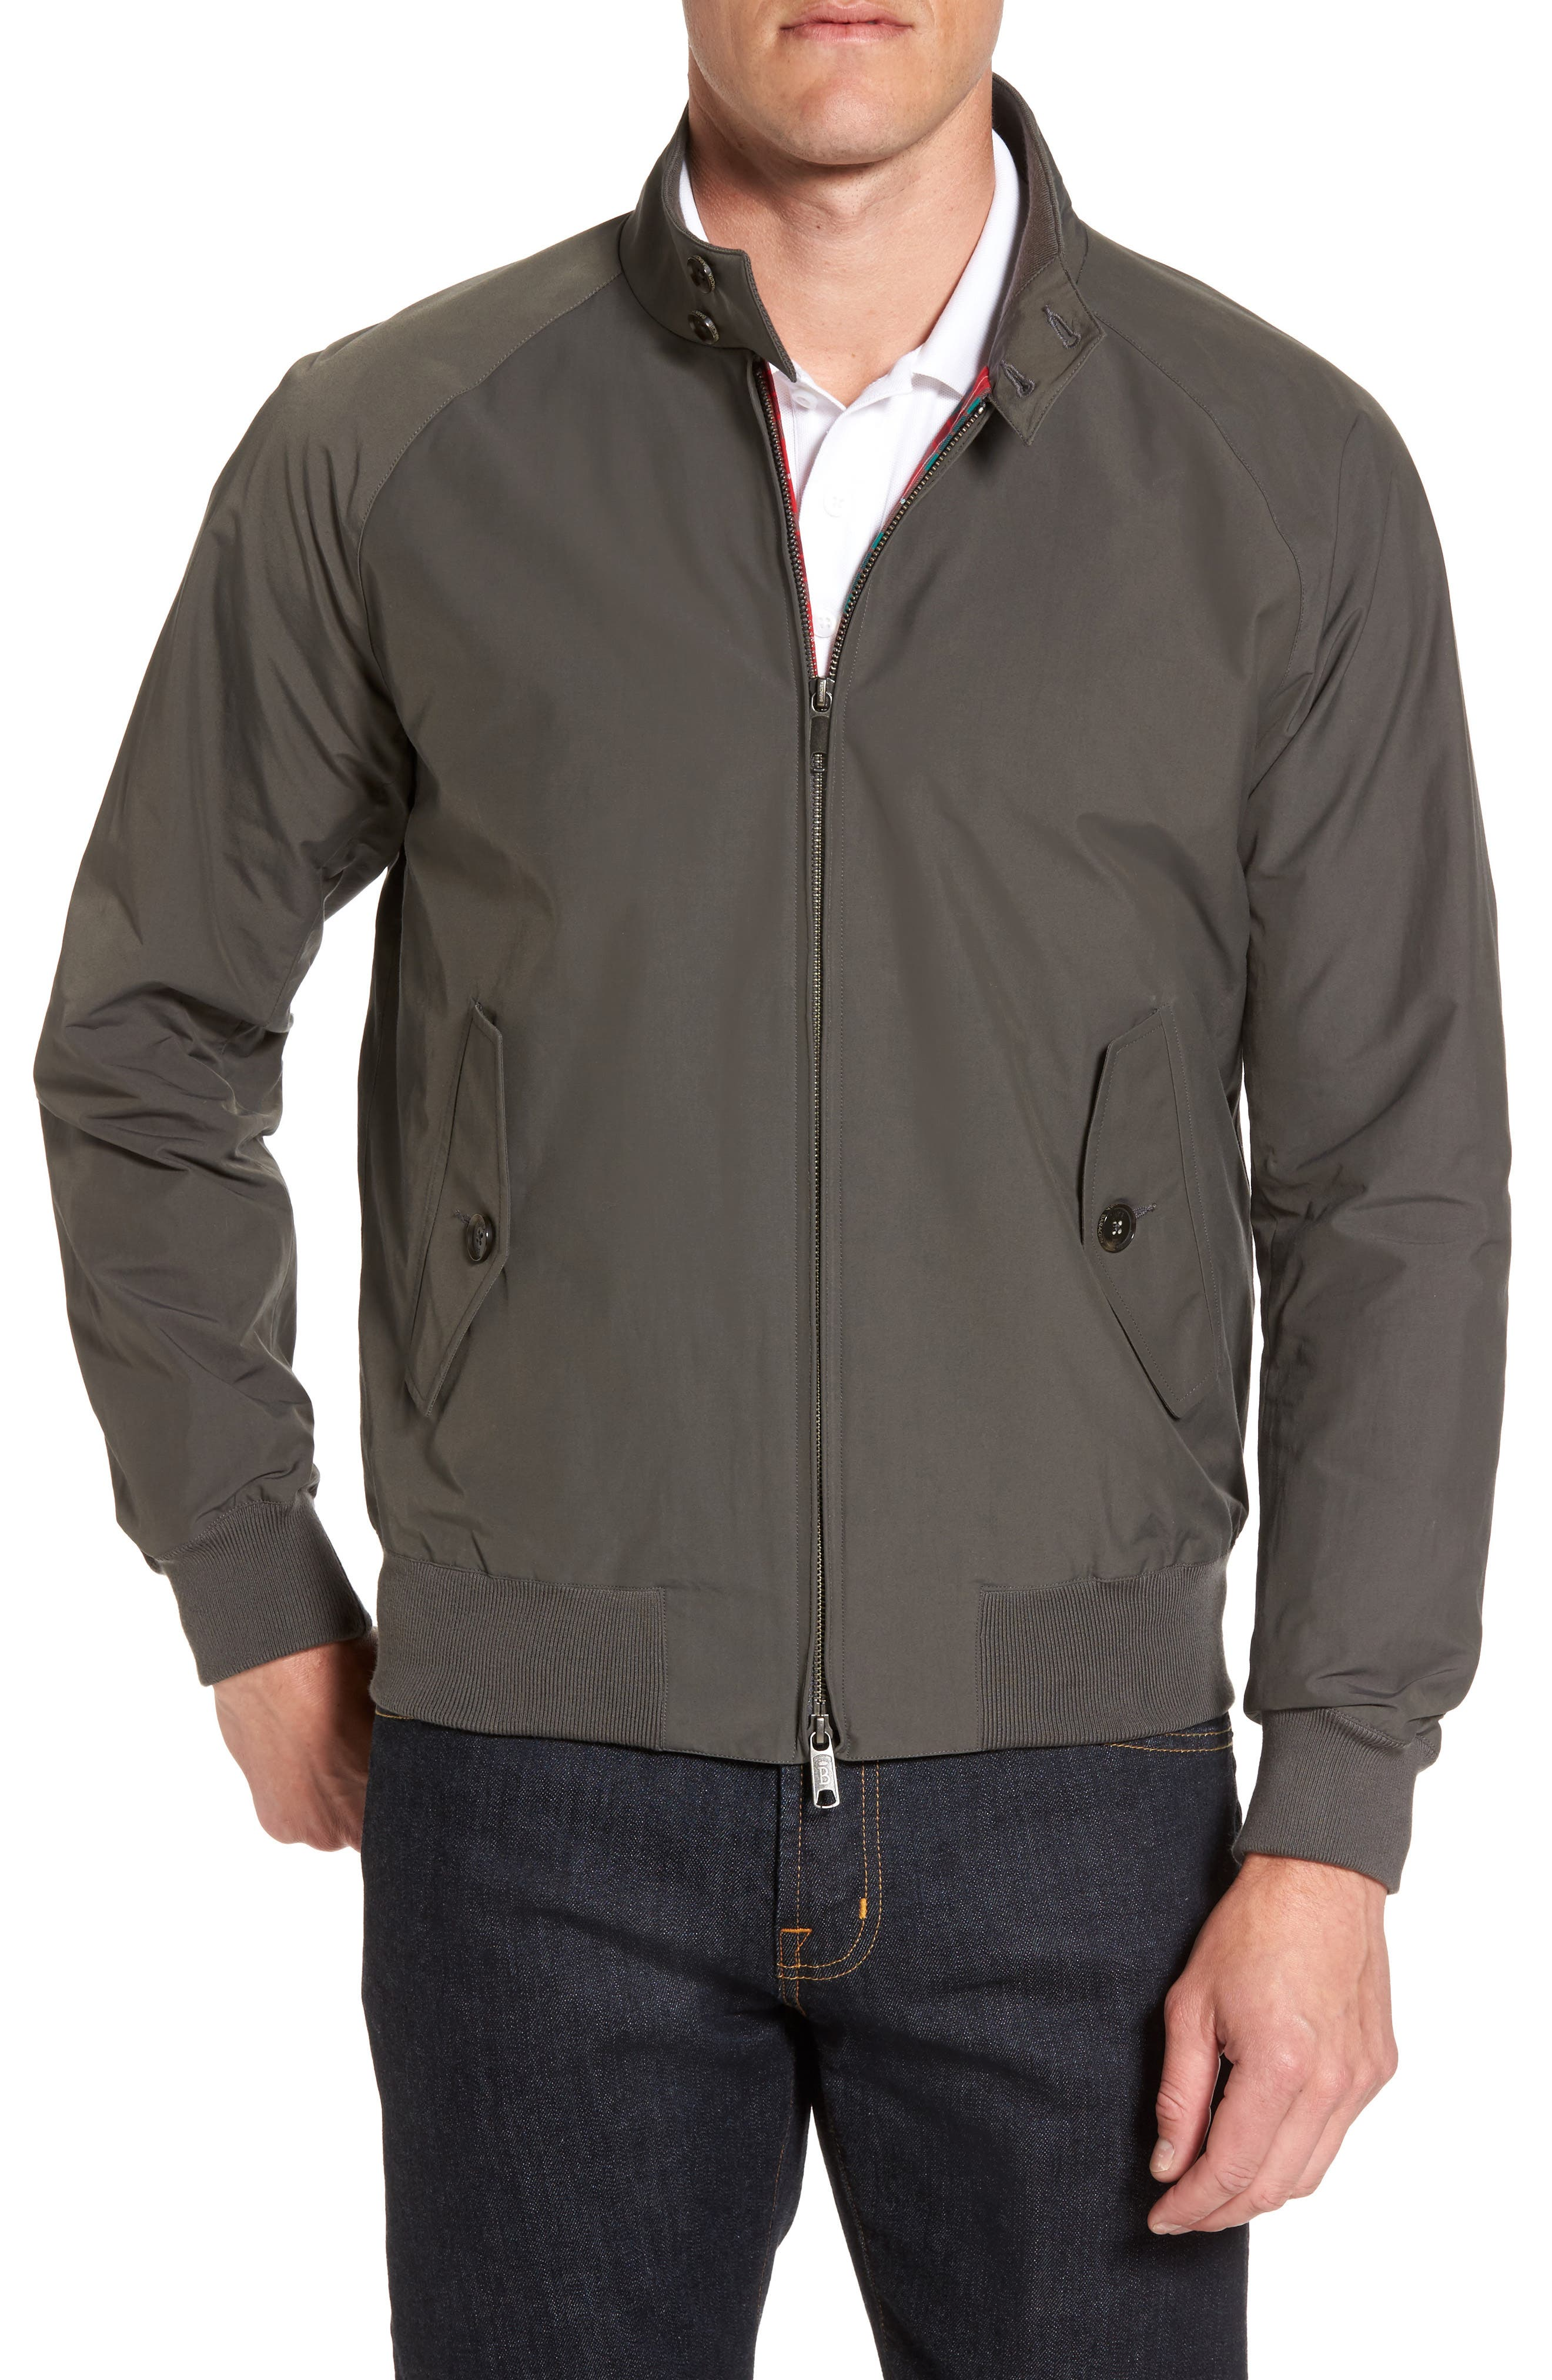 G9 Water Resistant Harrington Jacket,                             Main thumbnail 1, color,                             021